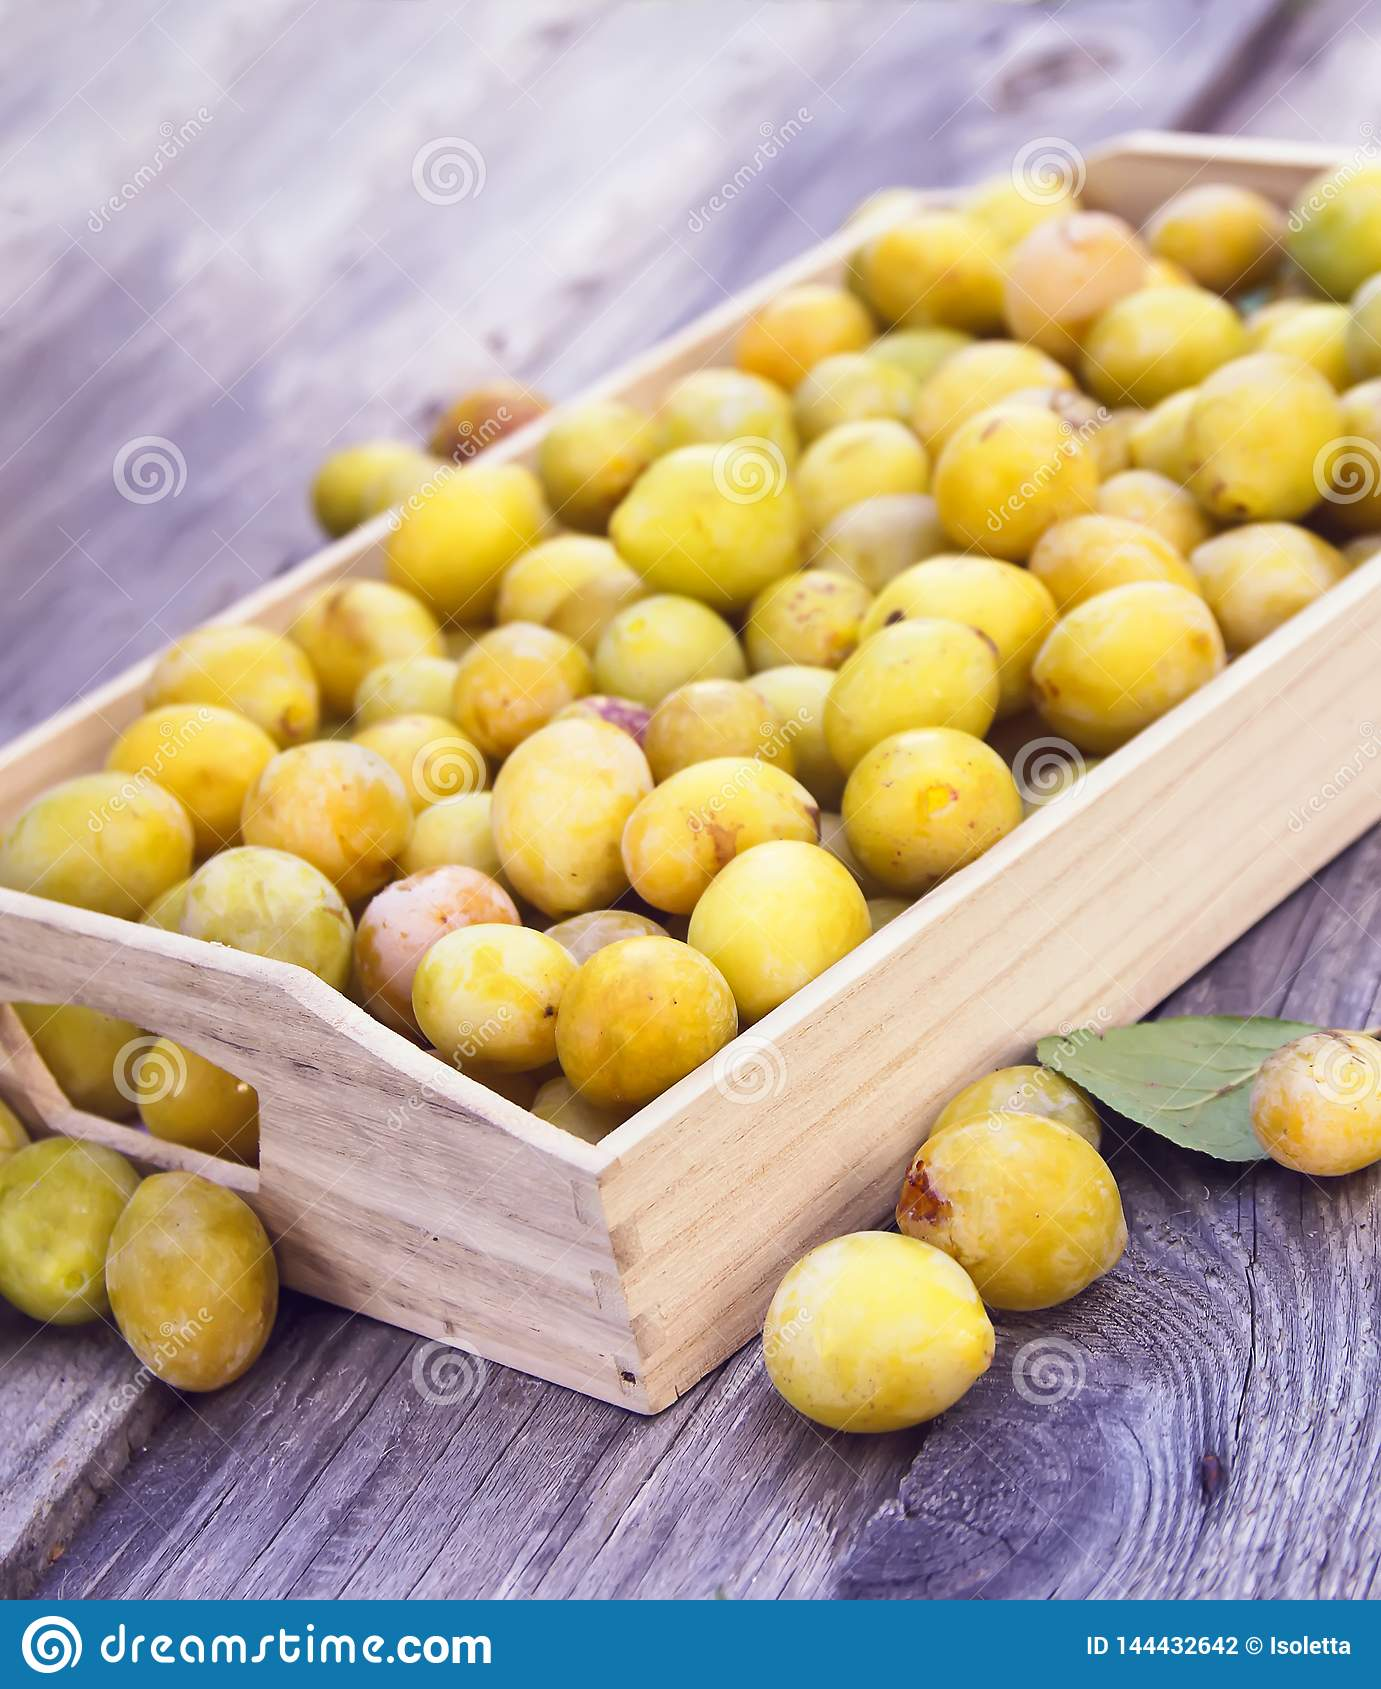 Fresh yellow plums. Ripe fruits in a wooden box on rough boards background